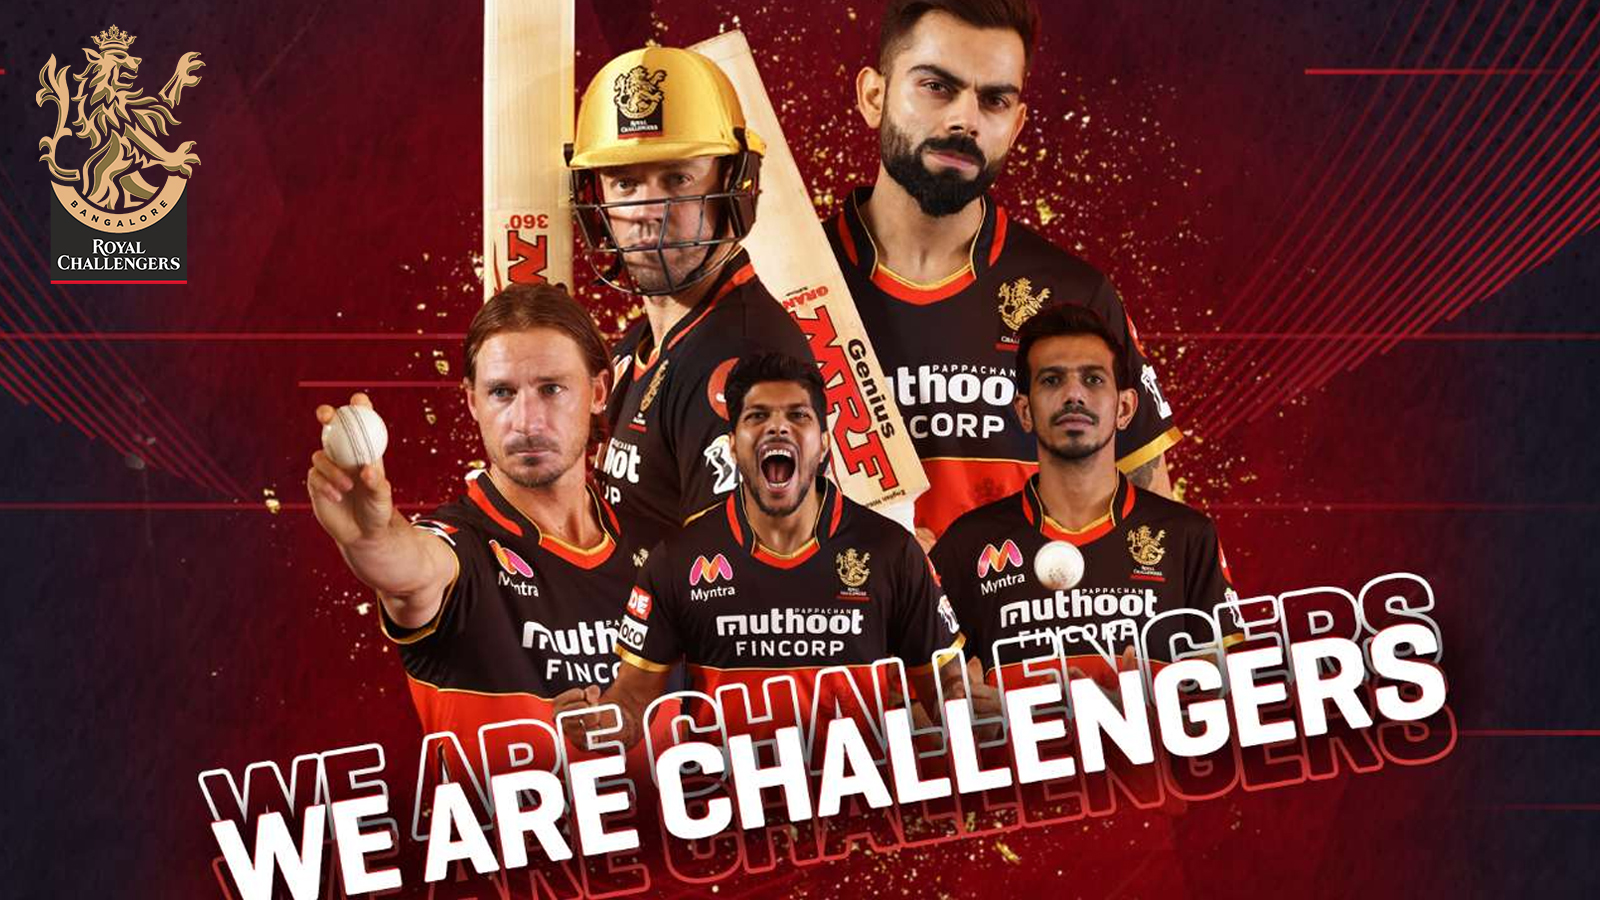 Place bets on Royal Challengers Bangalore team and try to win a lot during the IPL events.